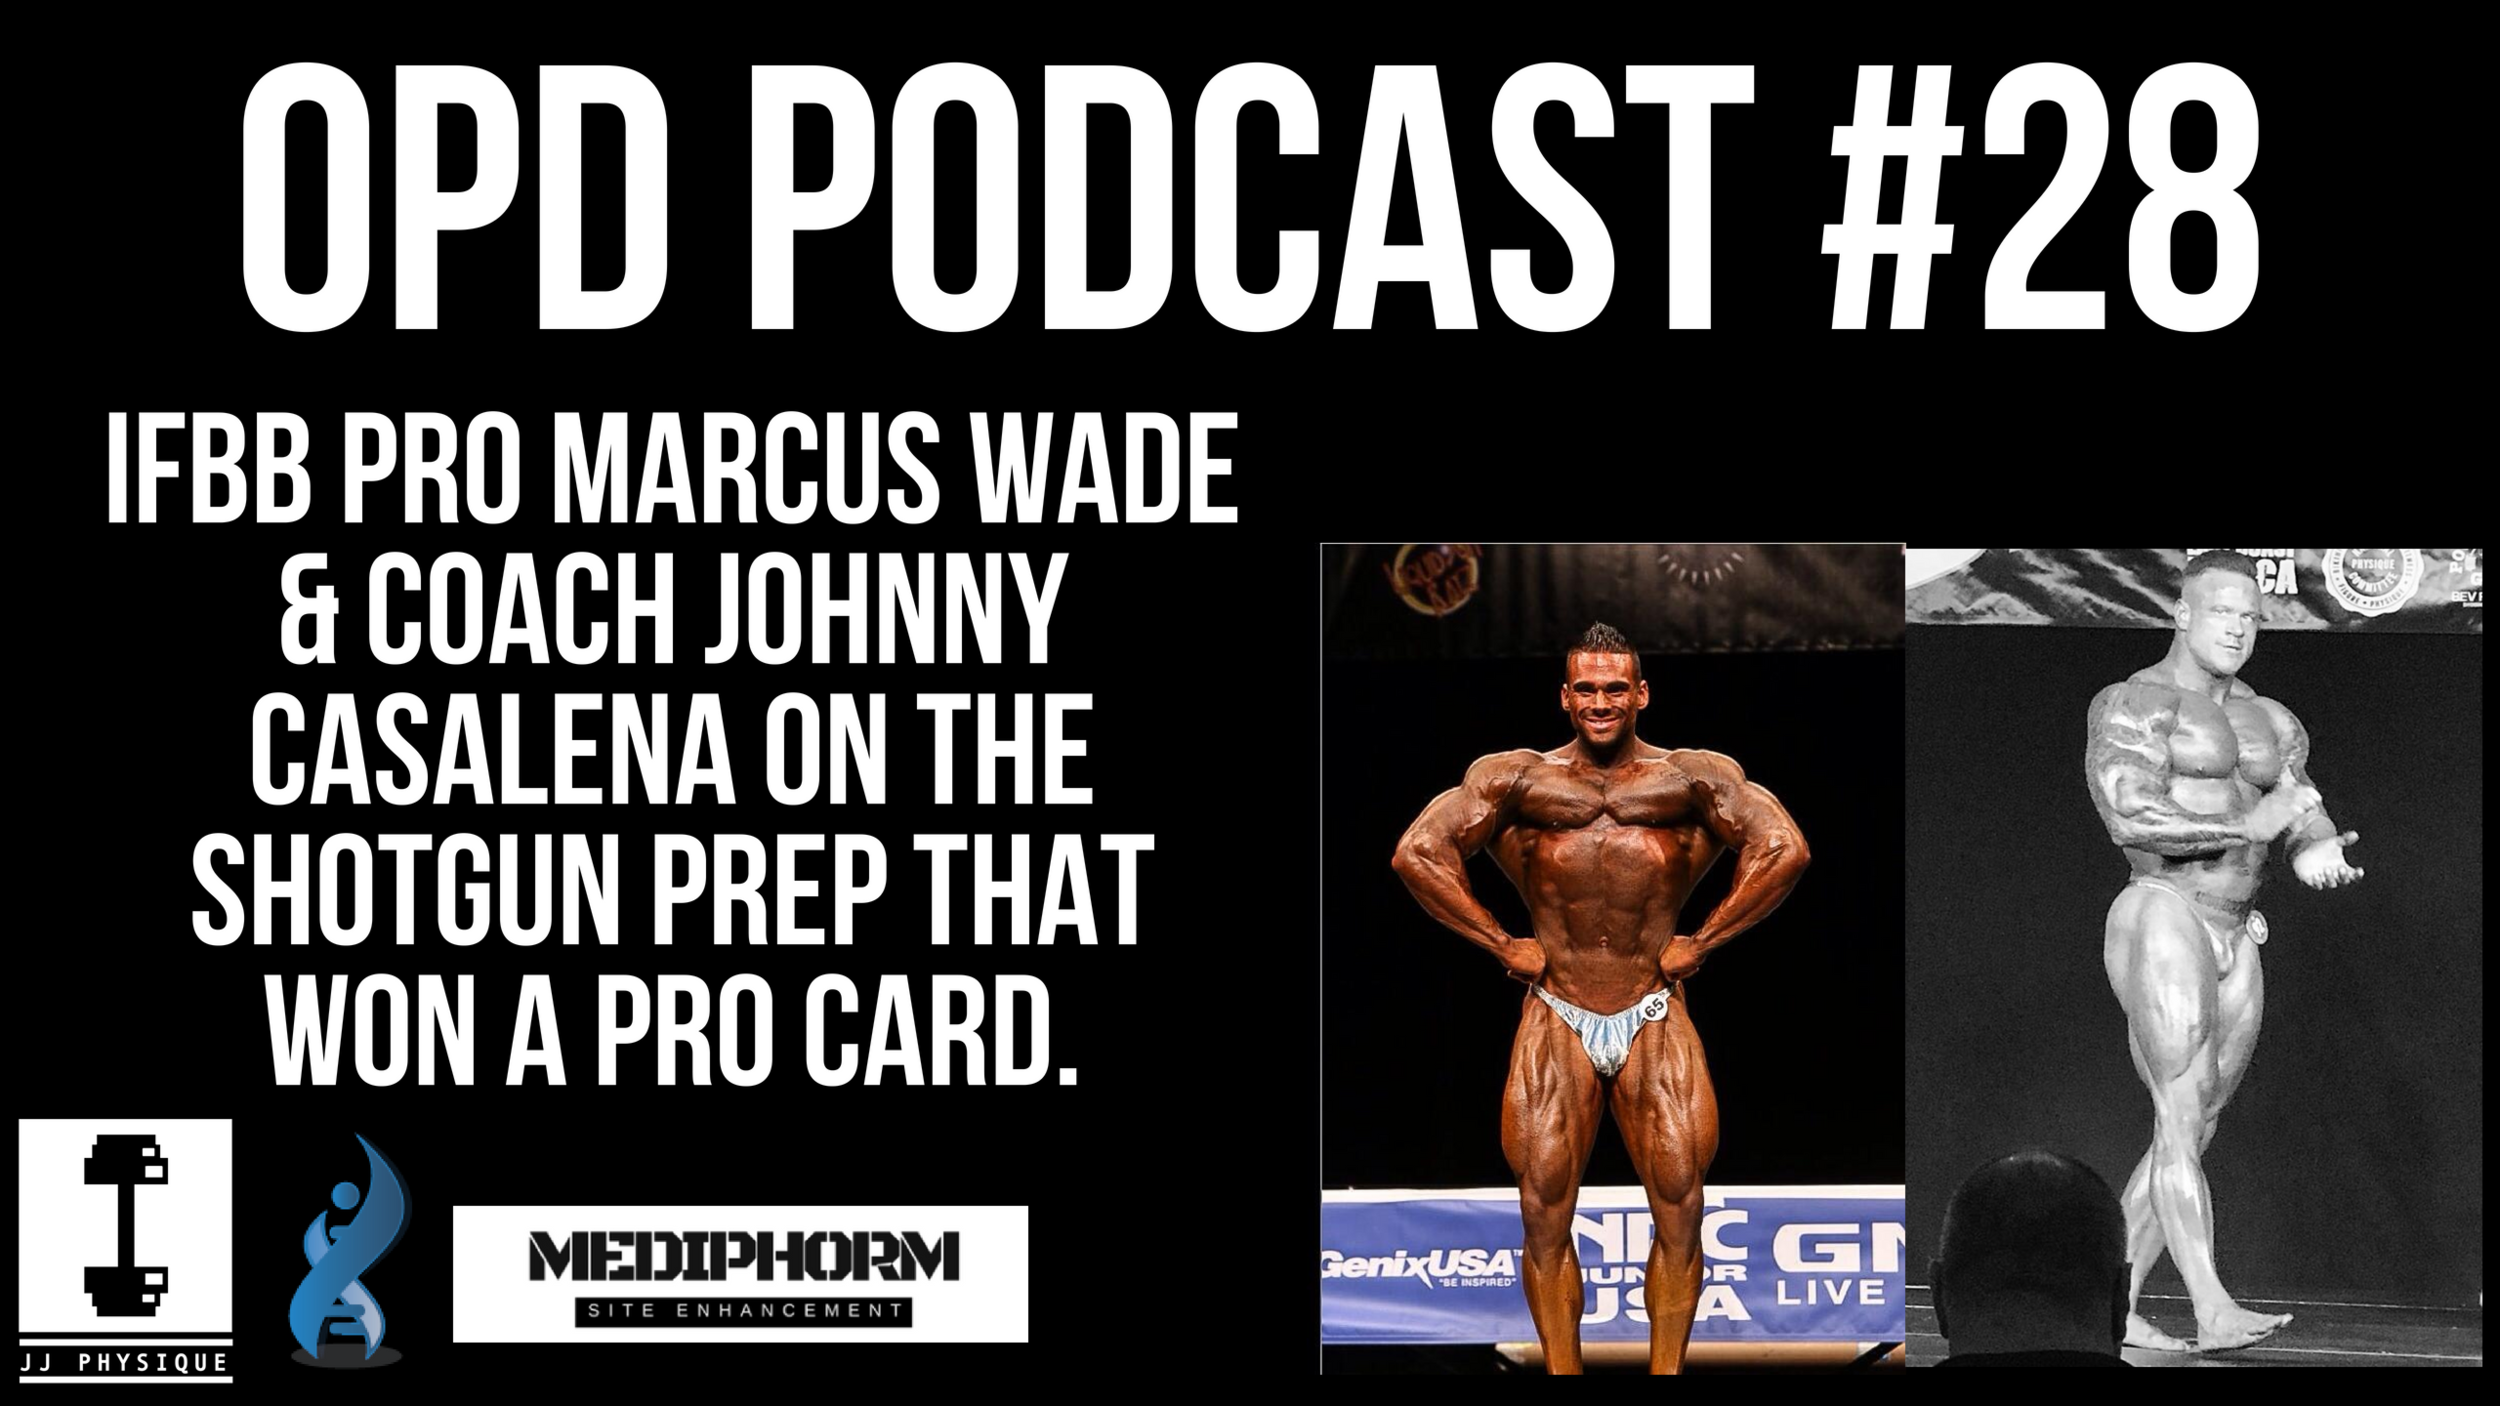 OPTIMAL PHYSIQUE DEVELOPMENTPODCAST (18).png